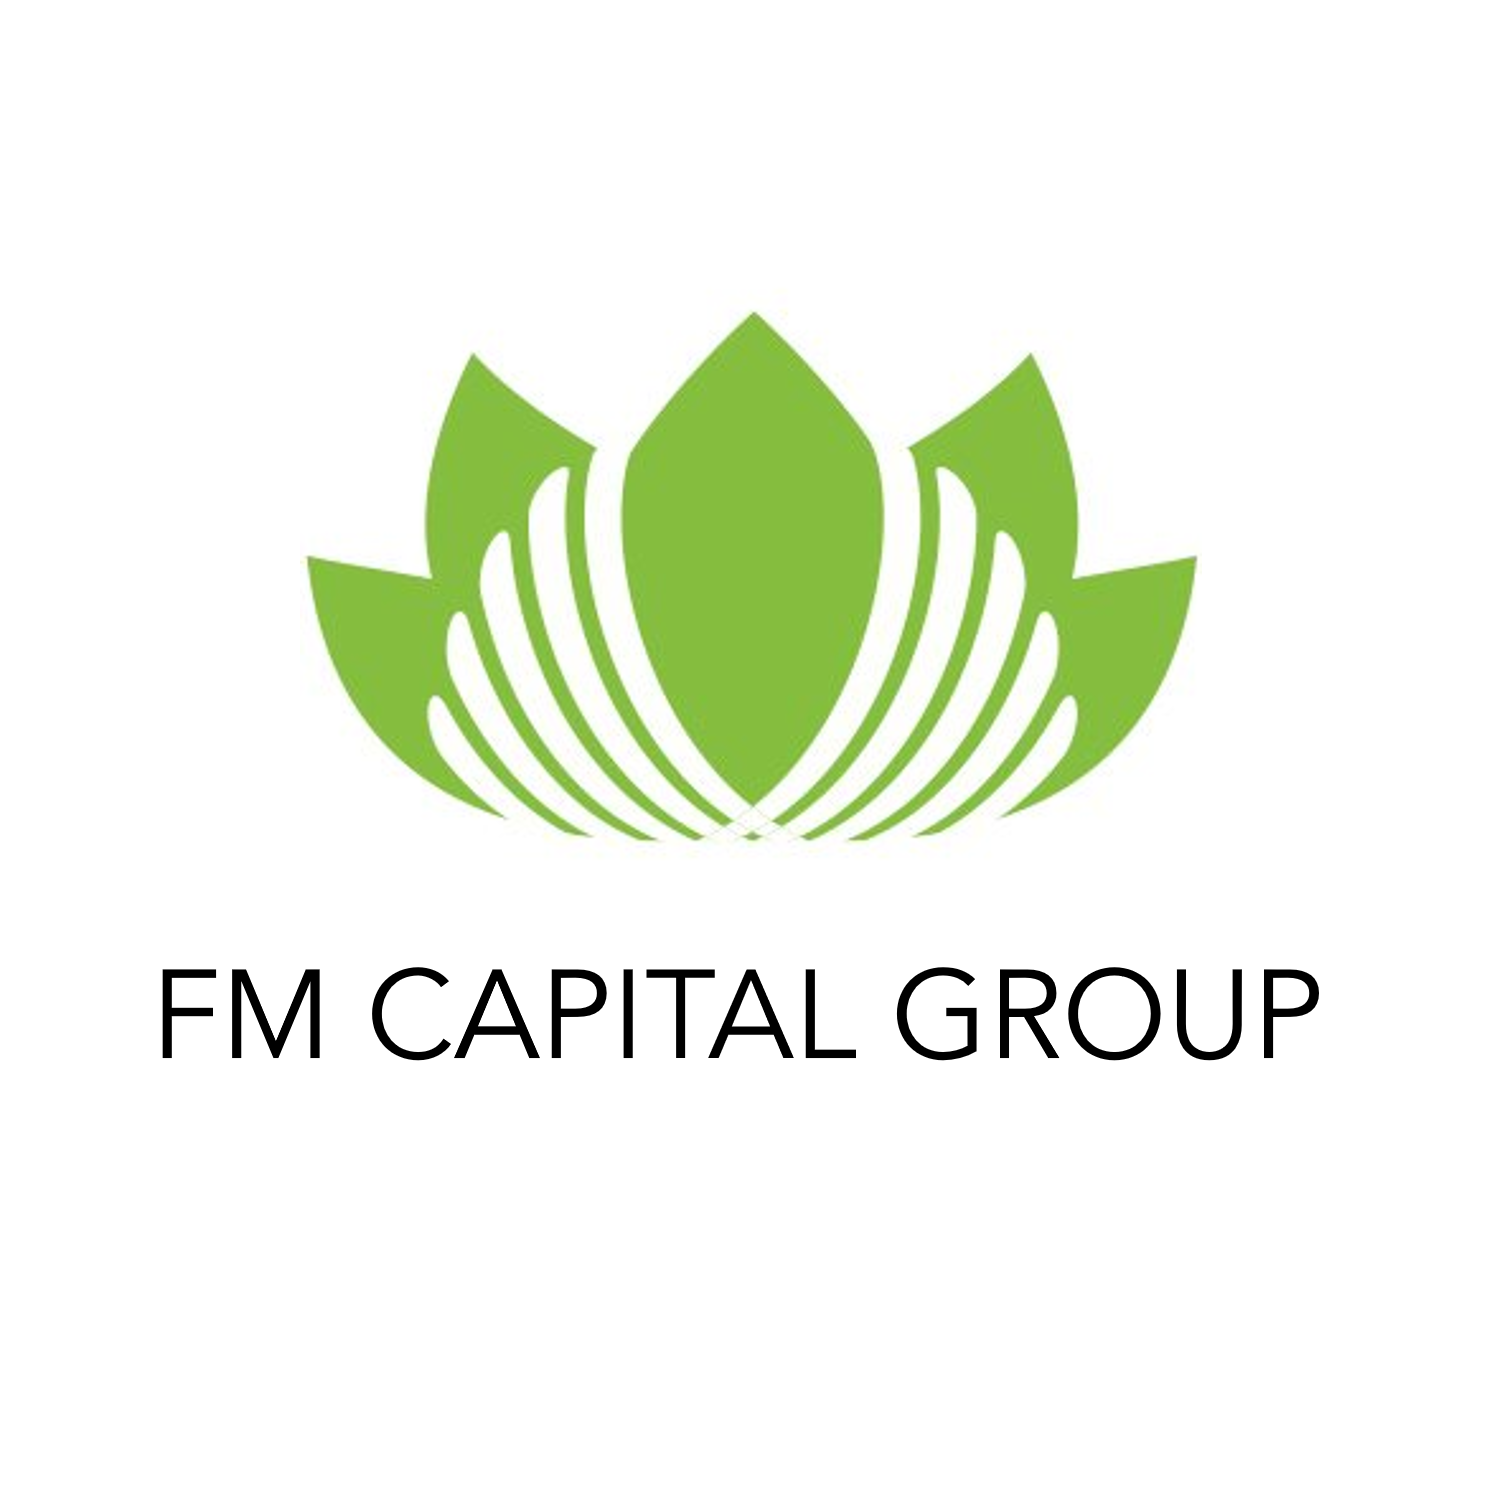 FMCAPITALGROUP.png